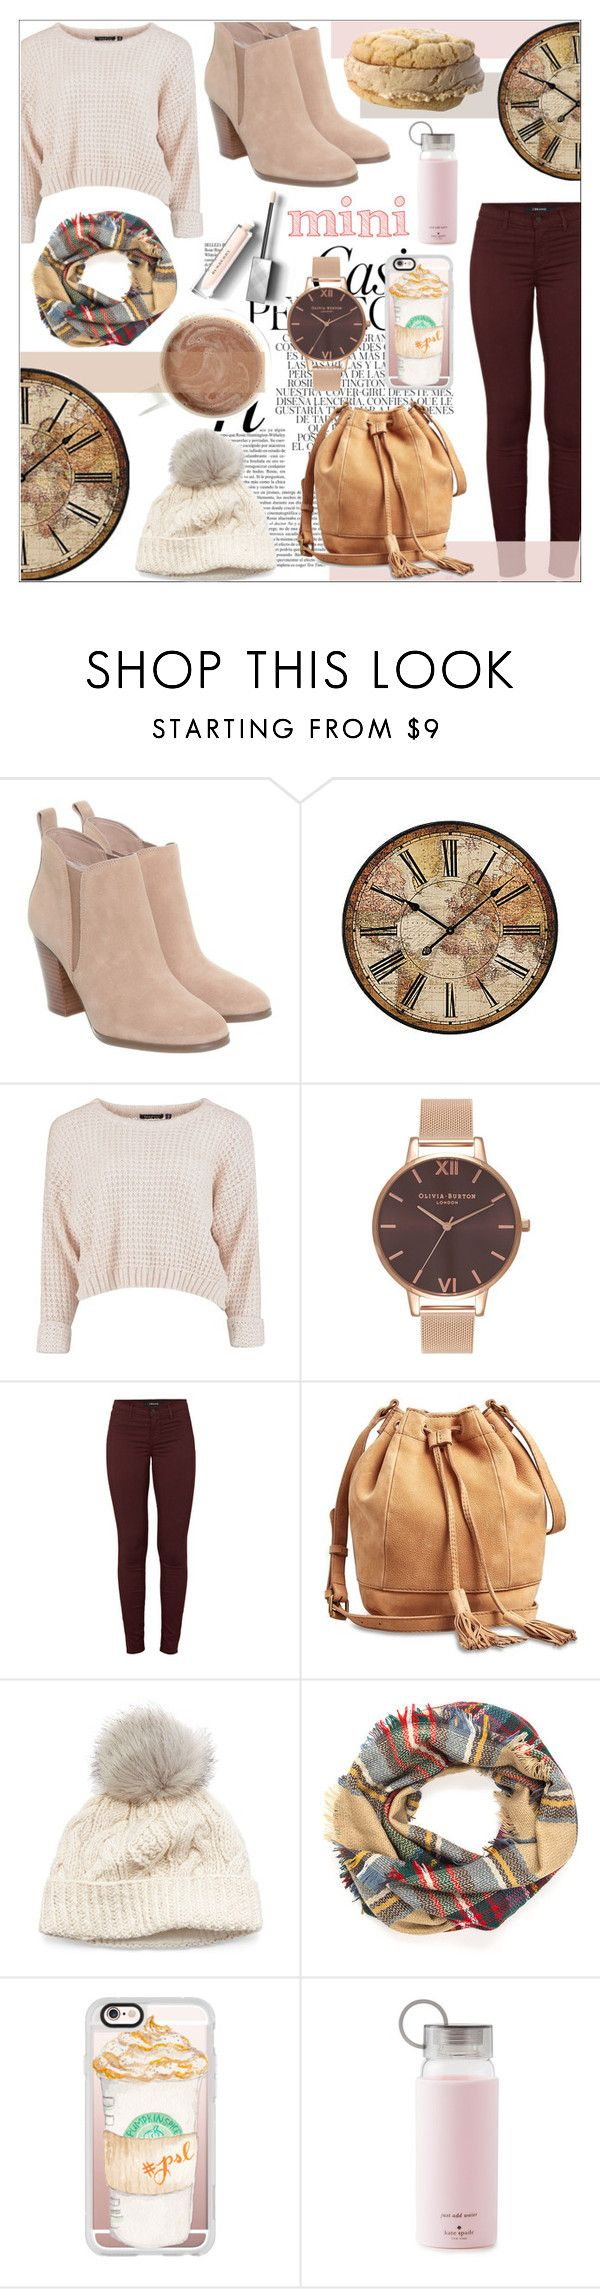 """""""coffee at coffee shop"""" by enjoyrosa ❤ liked on Polyvore featuring Whiteley, Michael Kors, WALL, Olivia Burton, J Brand, Lucky Brand, SIJJL, Casetify, Kate Spade and Burberry"""